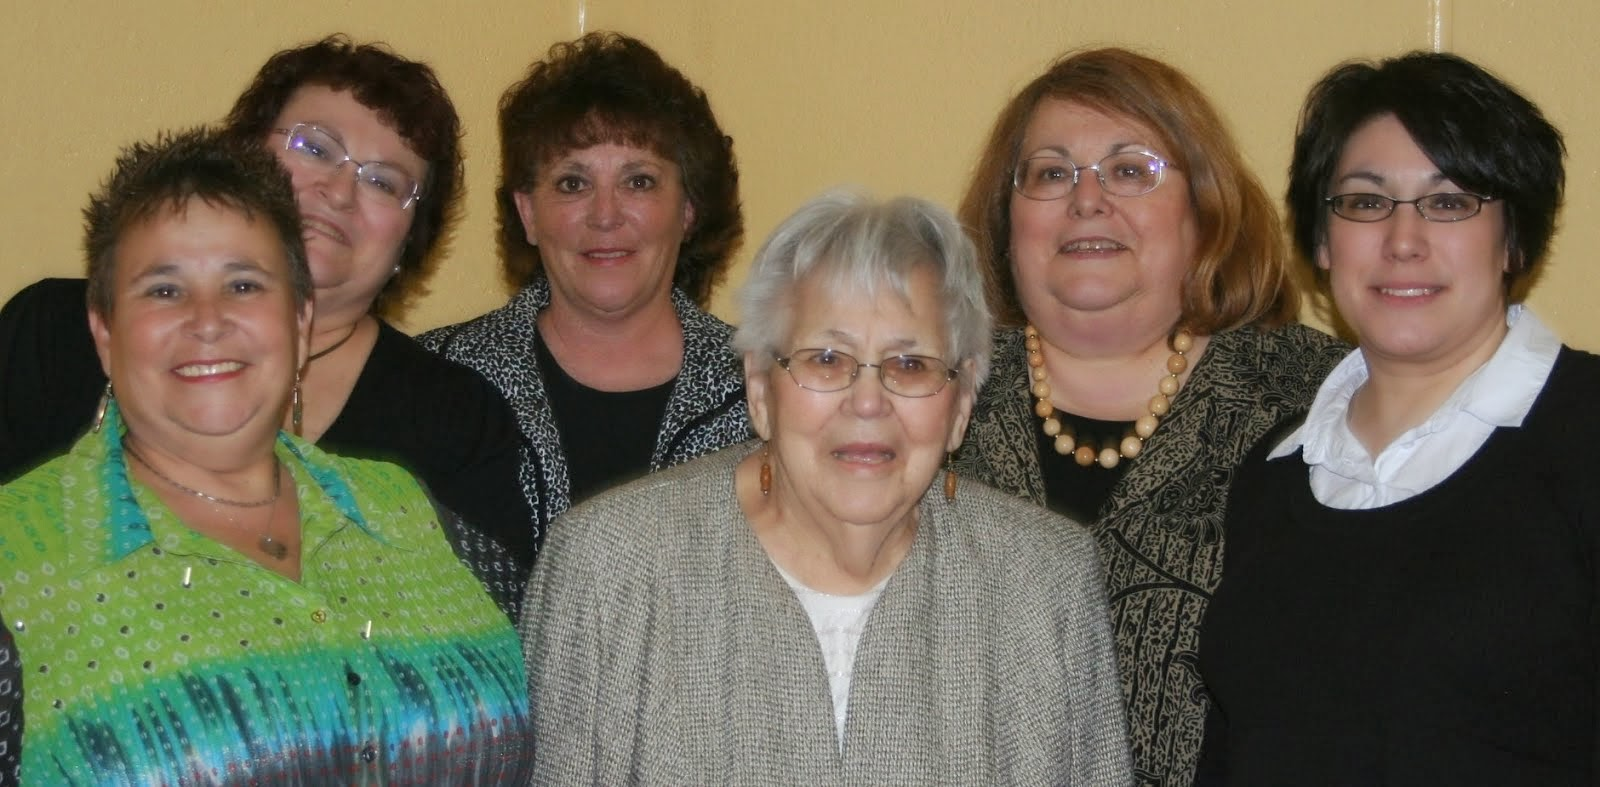 A gaggle of ladies, St. Johns, Newtonburg!